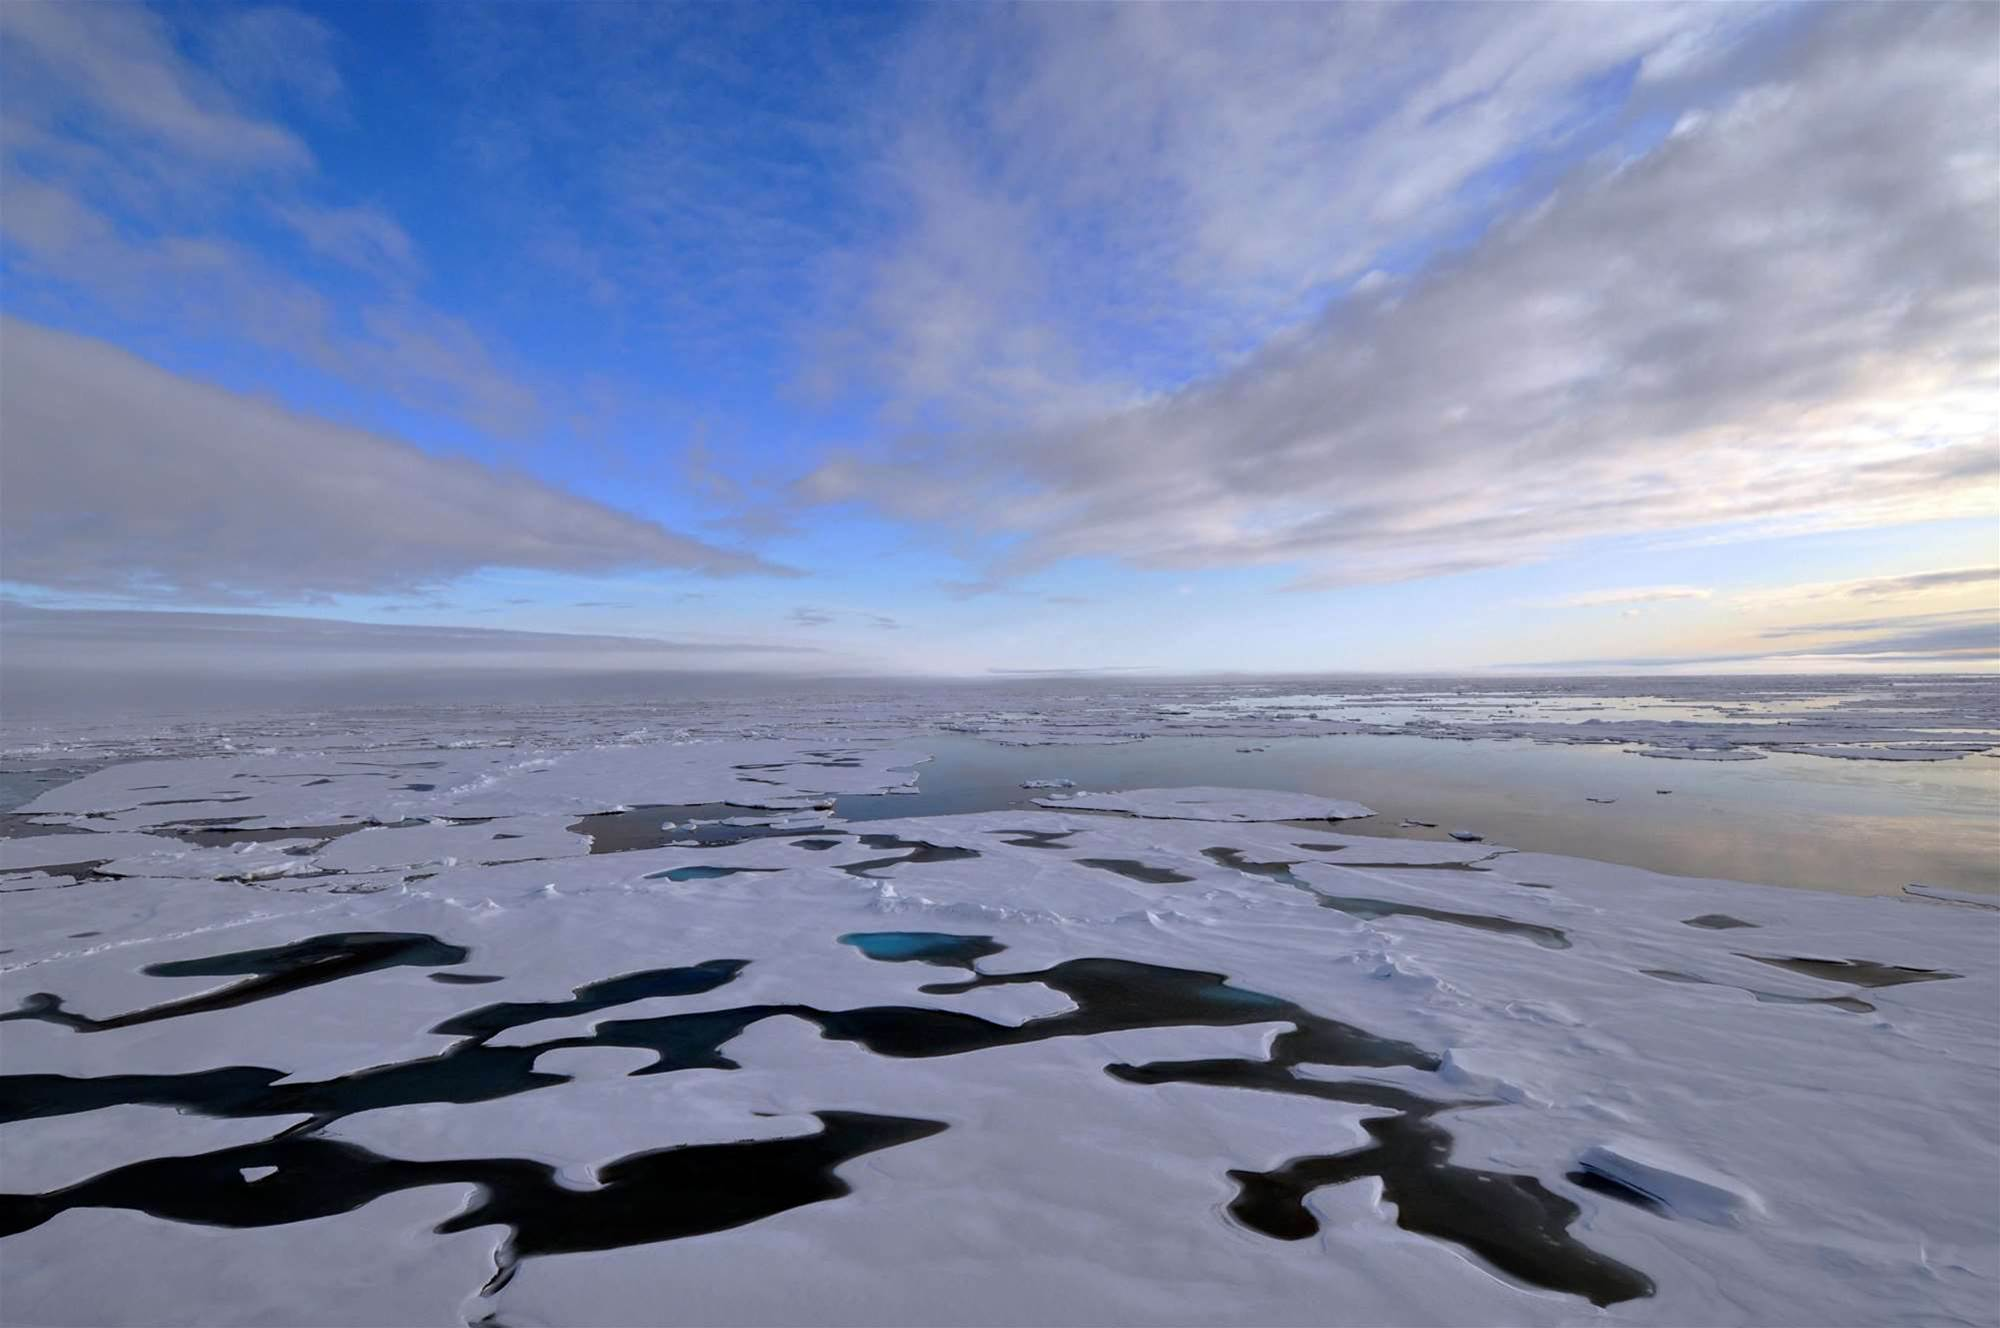 Shell Can Start Drilling For Oil In The Arctic Ocean This Northern Summer